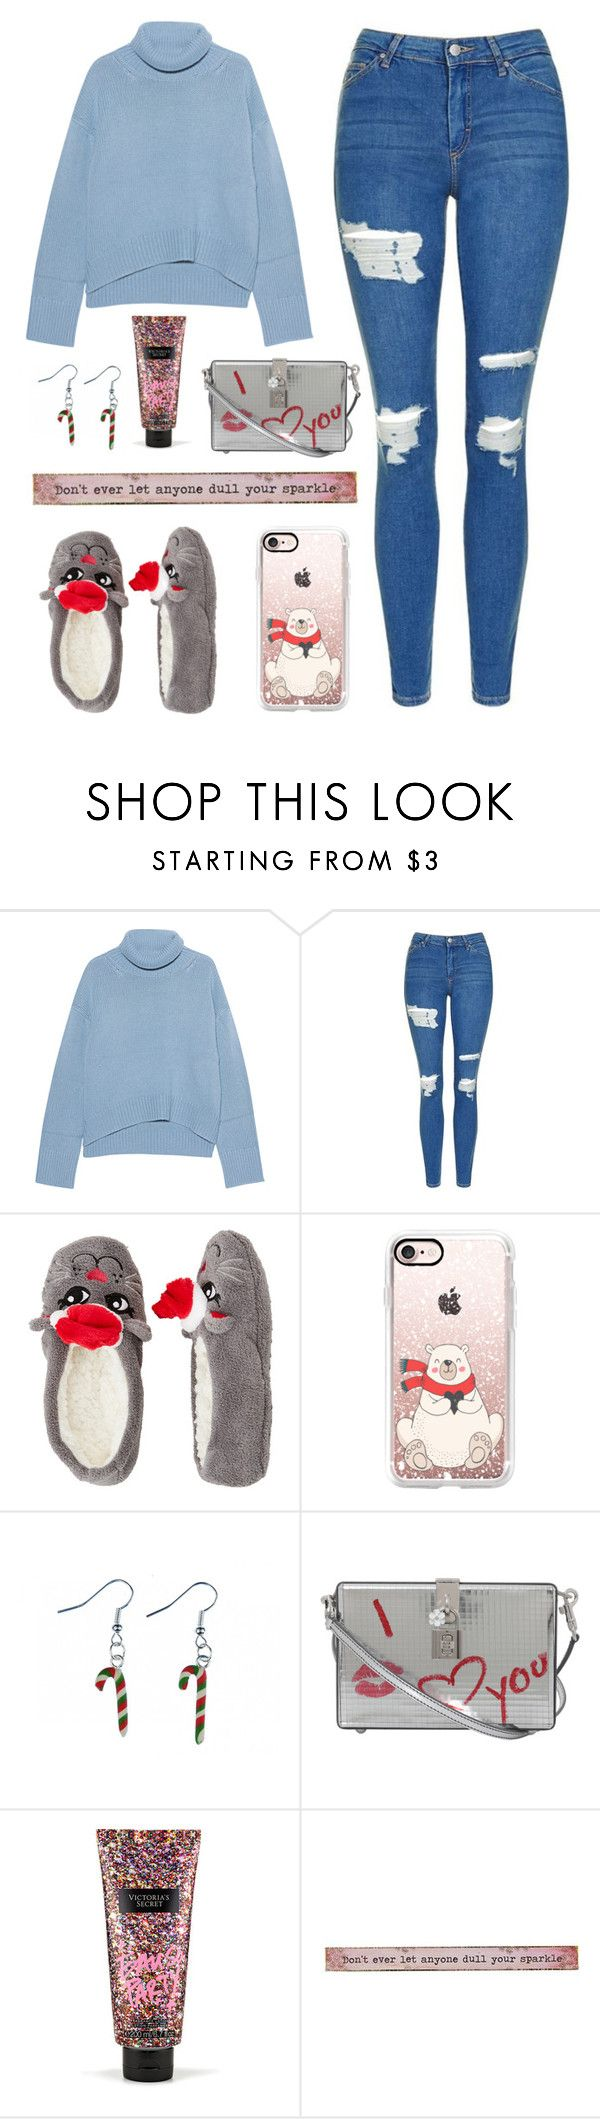 """Boxing Day"" by aemun-ahmad ❤ liked on Polyvore featuring iHeart, Topshop, Capelli New York, Casetify, Dolce&Gabbana, Victoria's Secret and Natural Life"